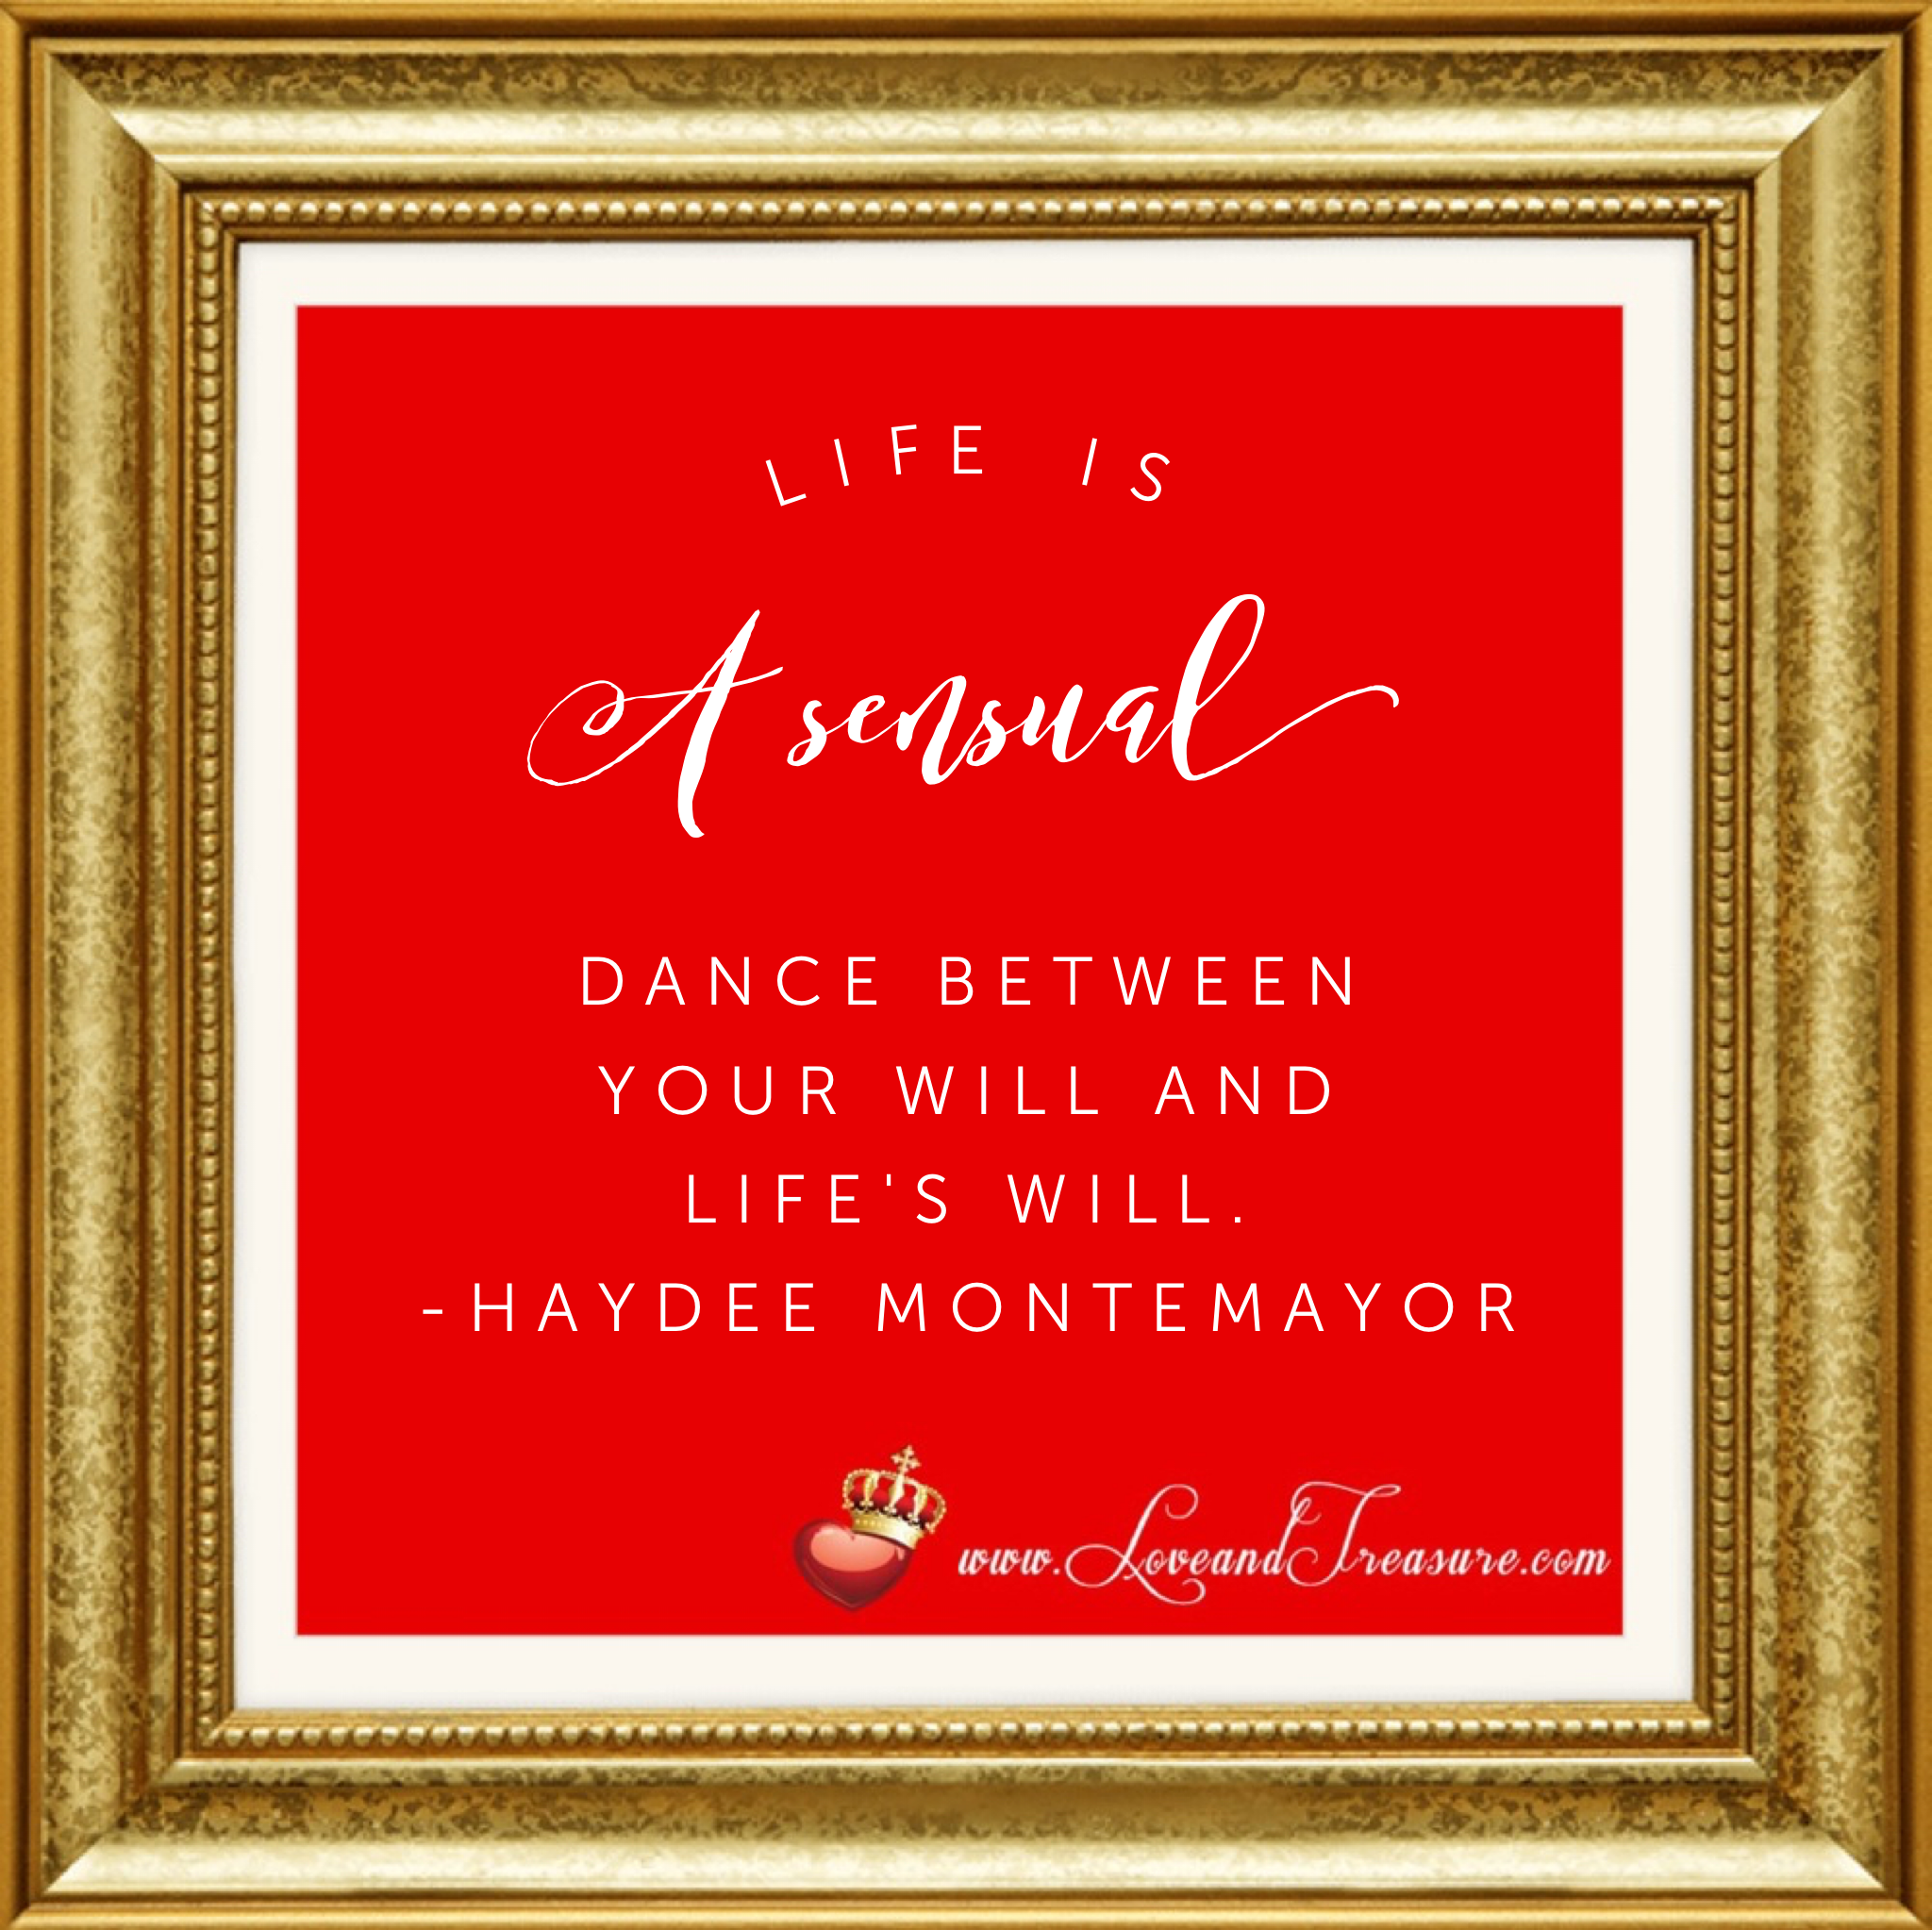 Life is a sensual dance between your will and life's will. Quotation by Haydee Montemayor from Love and Treasure blog at www.loveandtreasure.com